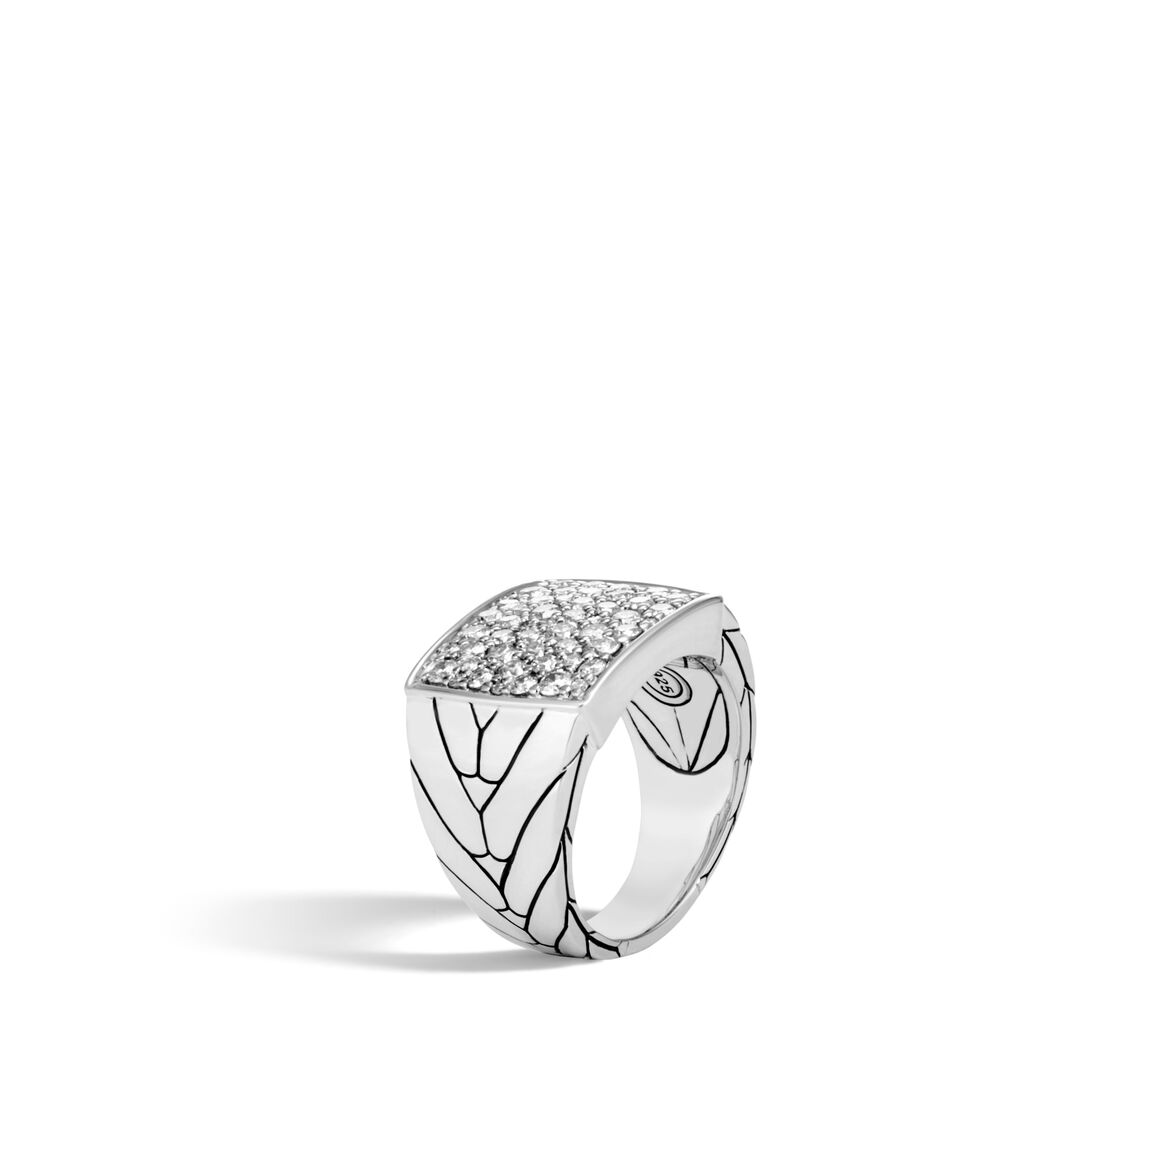 Modern Chain Signet Ring in Silver with Diamonds